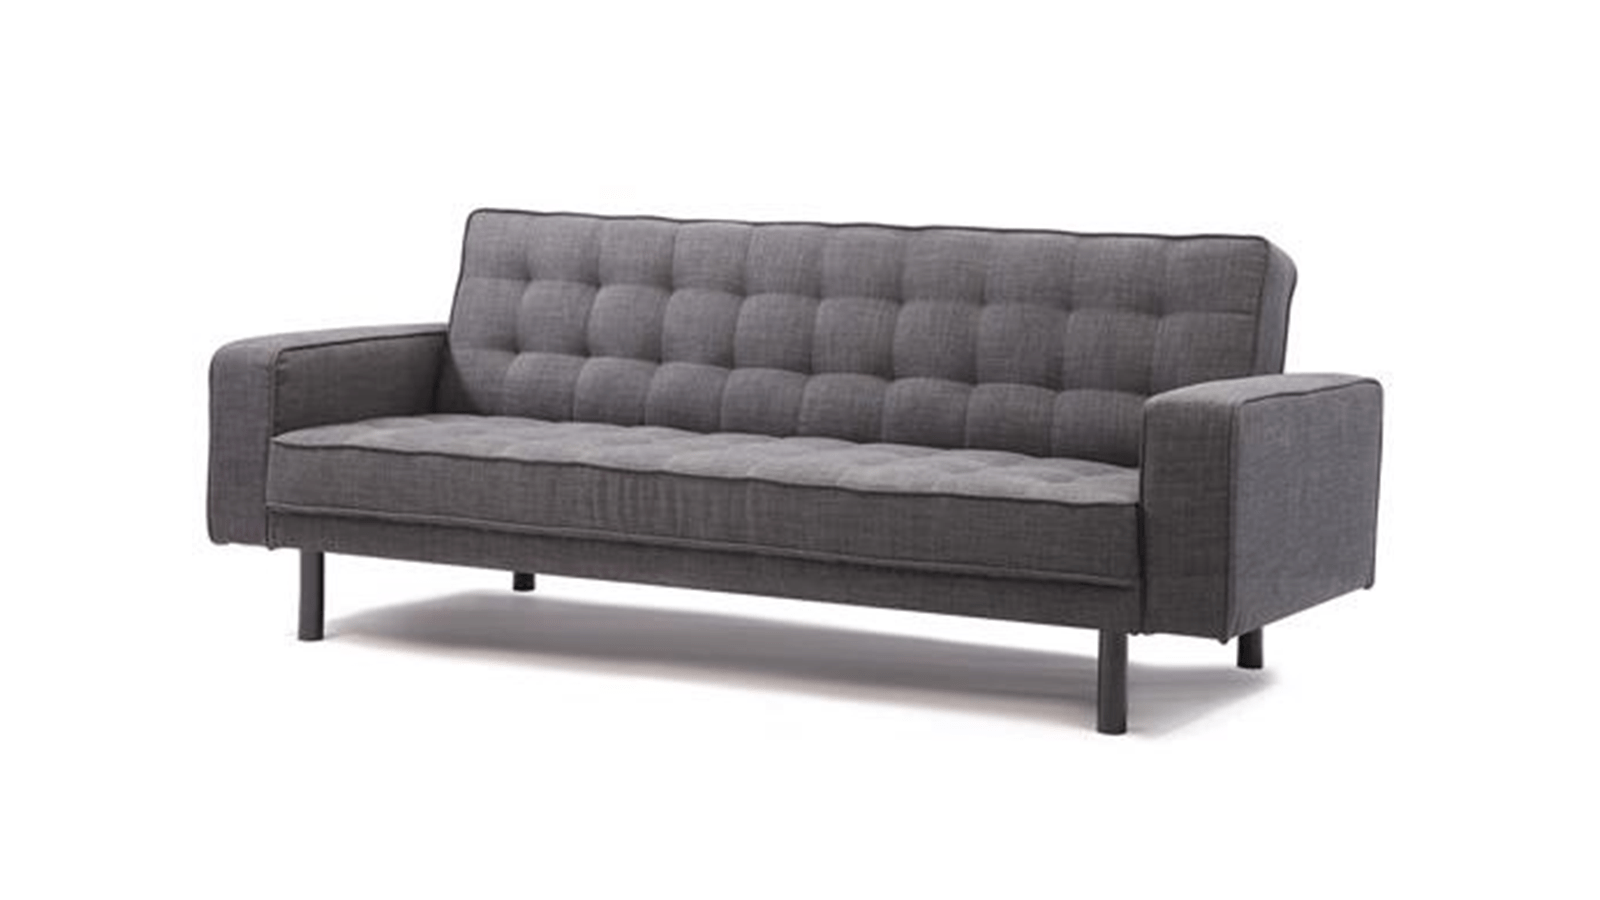 pull out sofa bed malaysia cindy crawford the brick harvey norman harveys good quality light